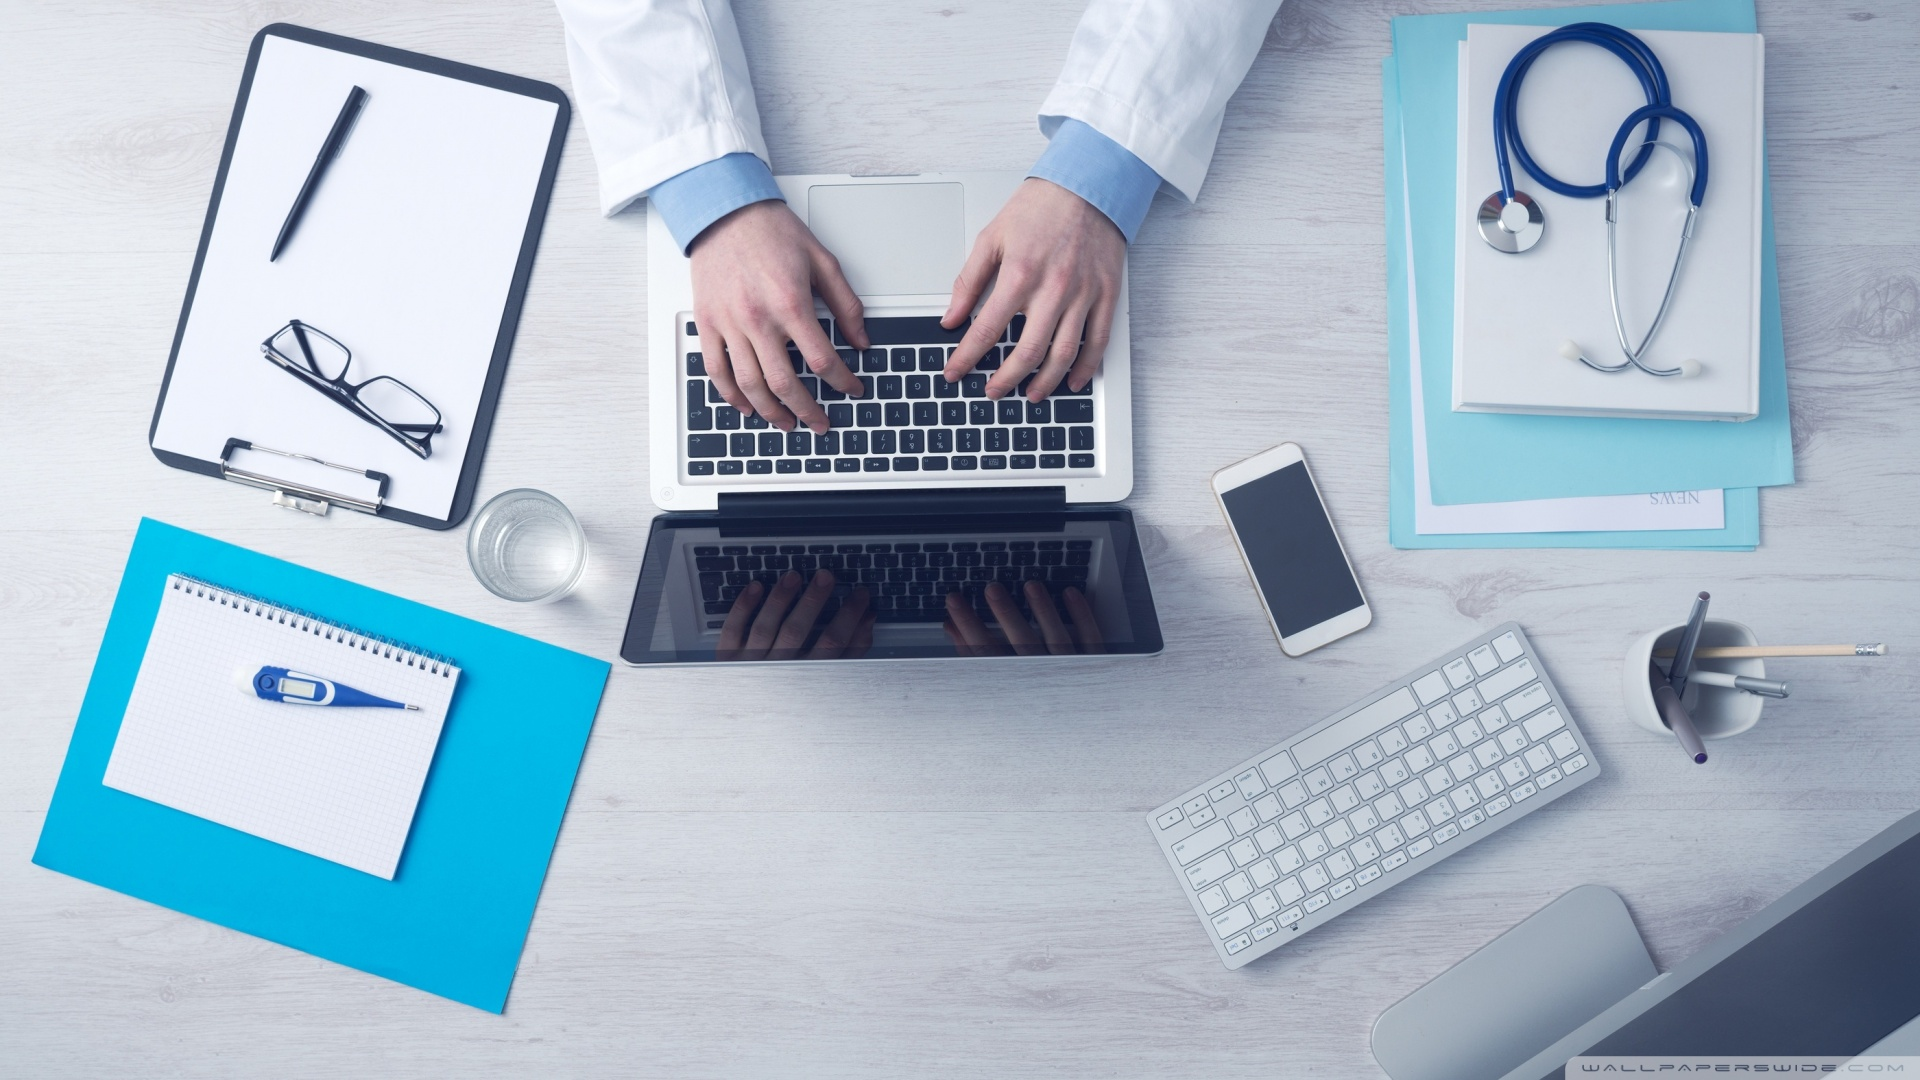 Online Consulations With Doctors